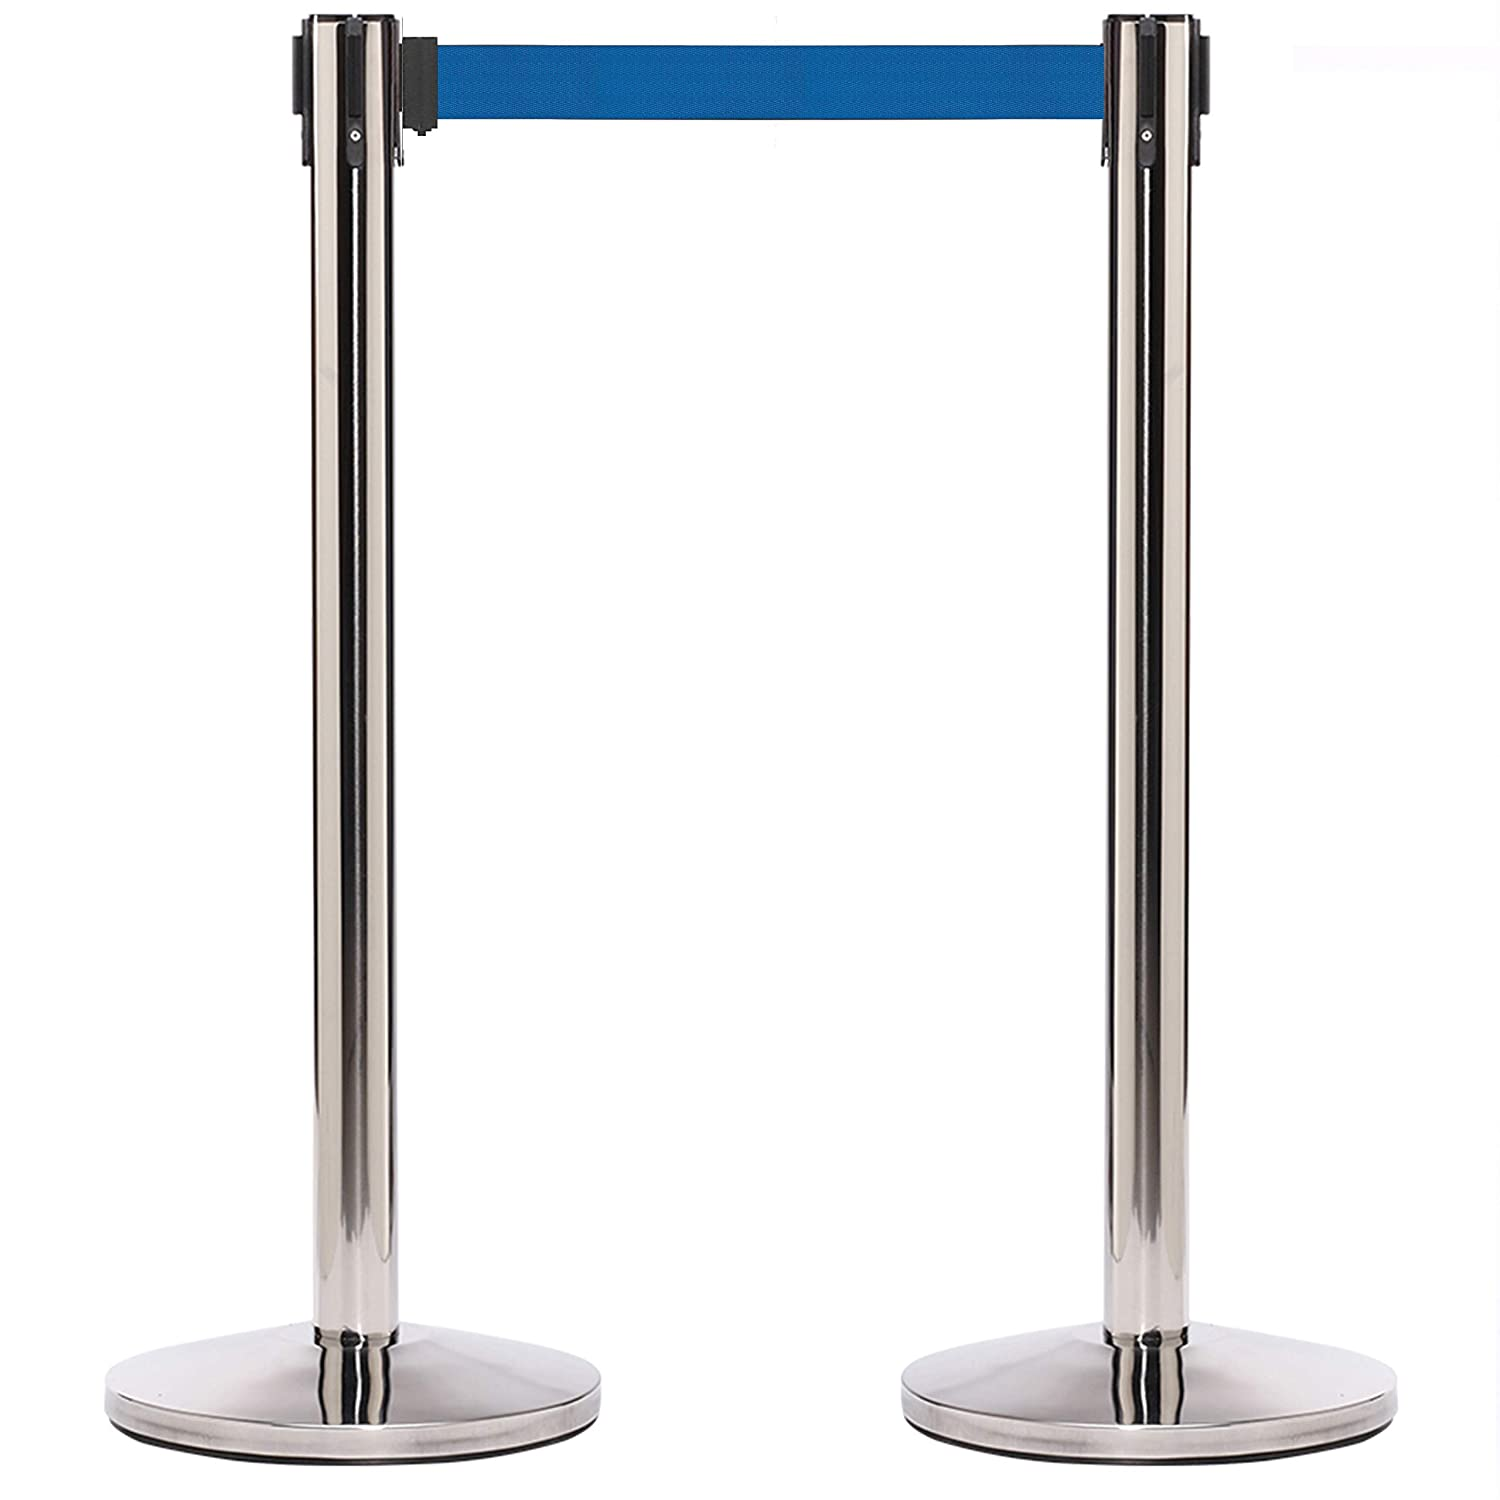 CCW Series RBB-100 10 Foot Belt, Dark Blue Belt with Black Post Set of 2 Stanchion Retractable Belt Barriers No Tools Required Easy to Assemble